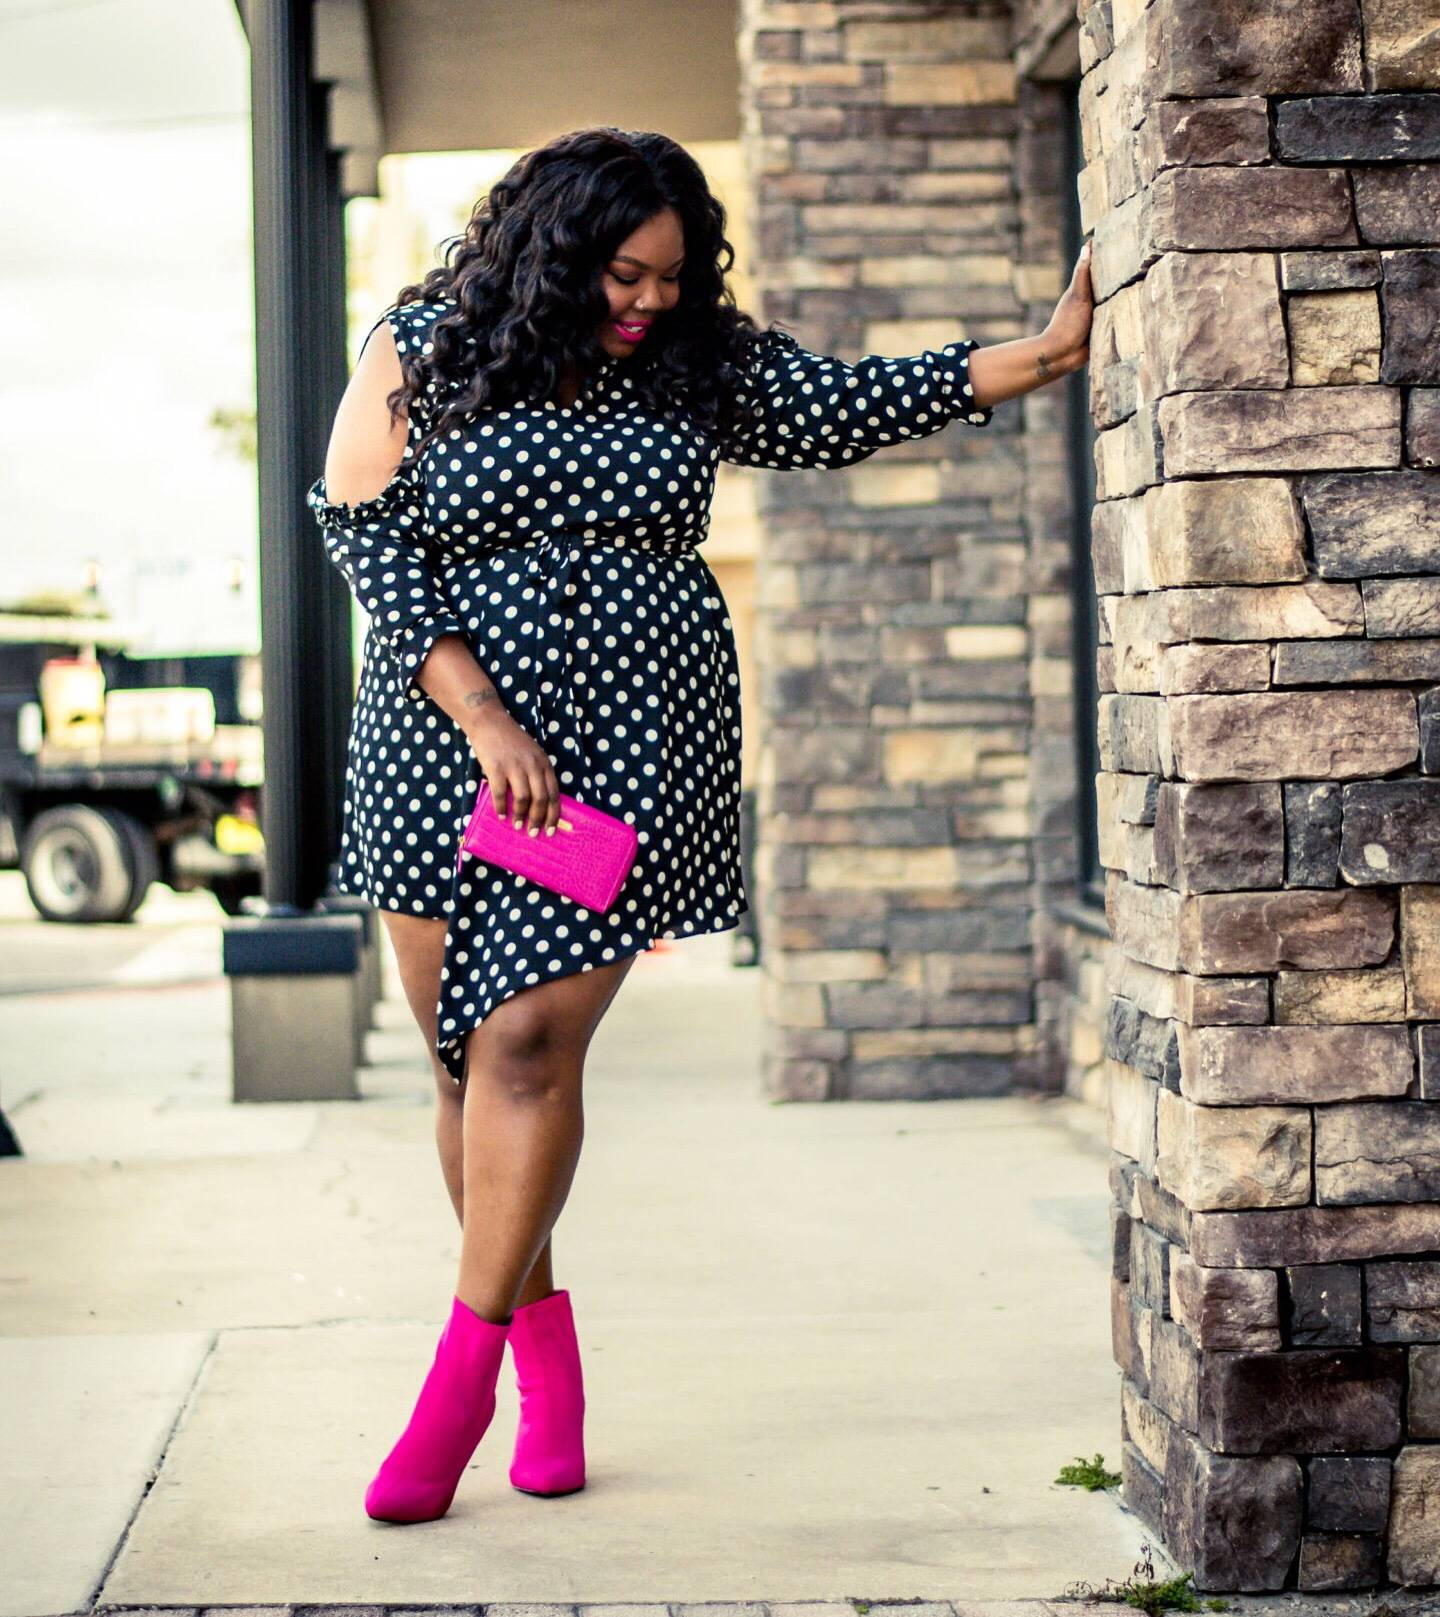 Falling In Love With Polka Dots